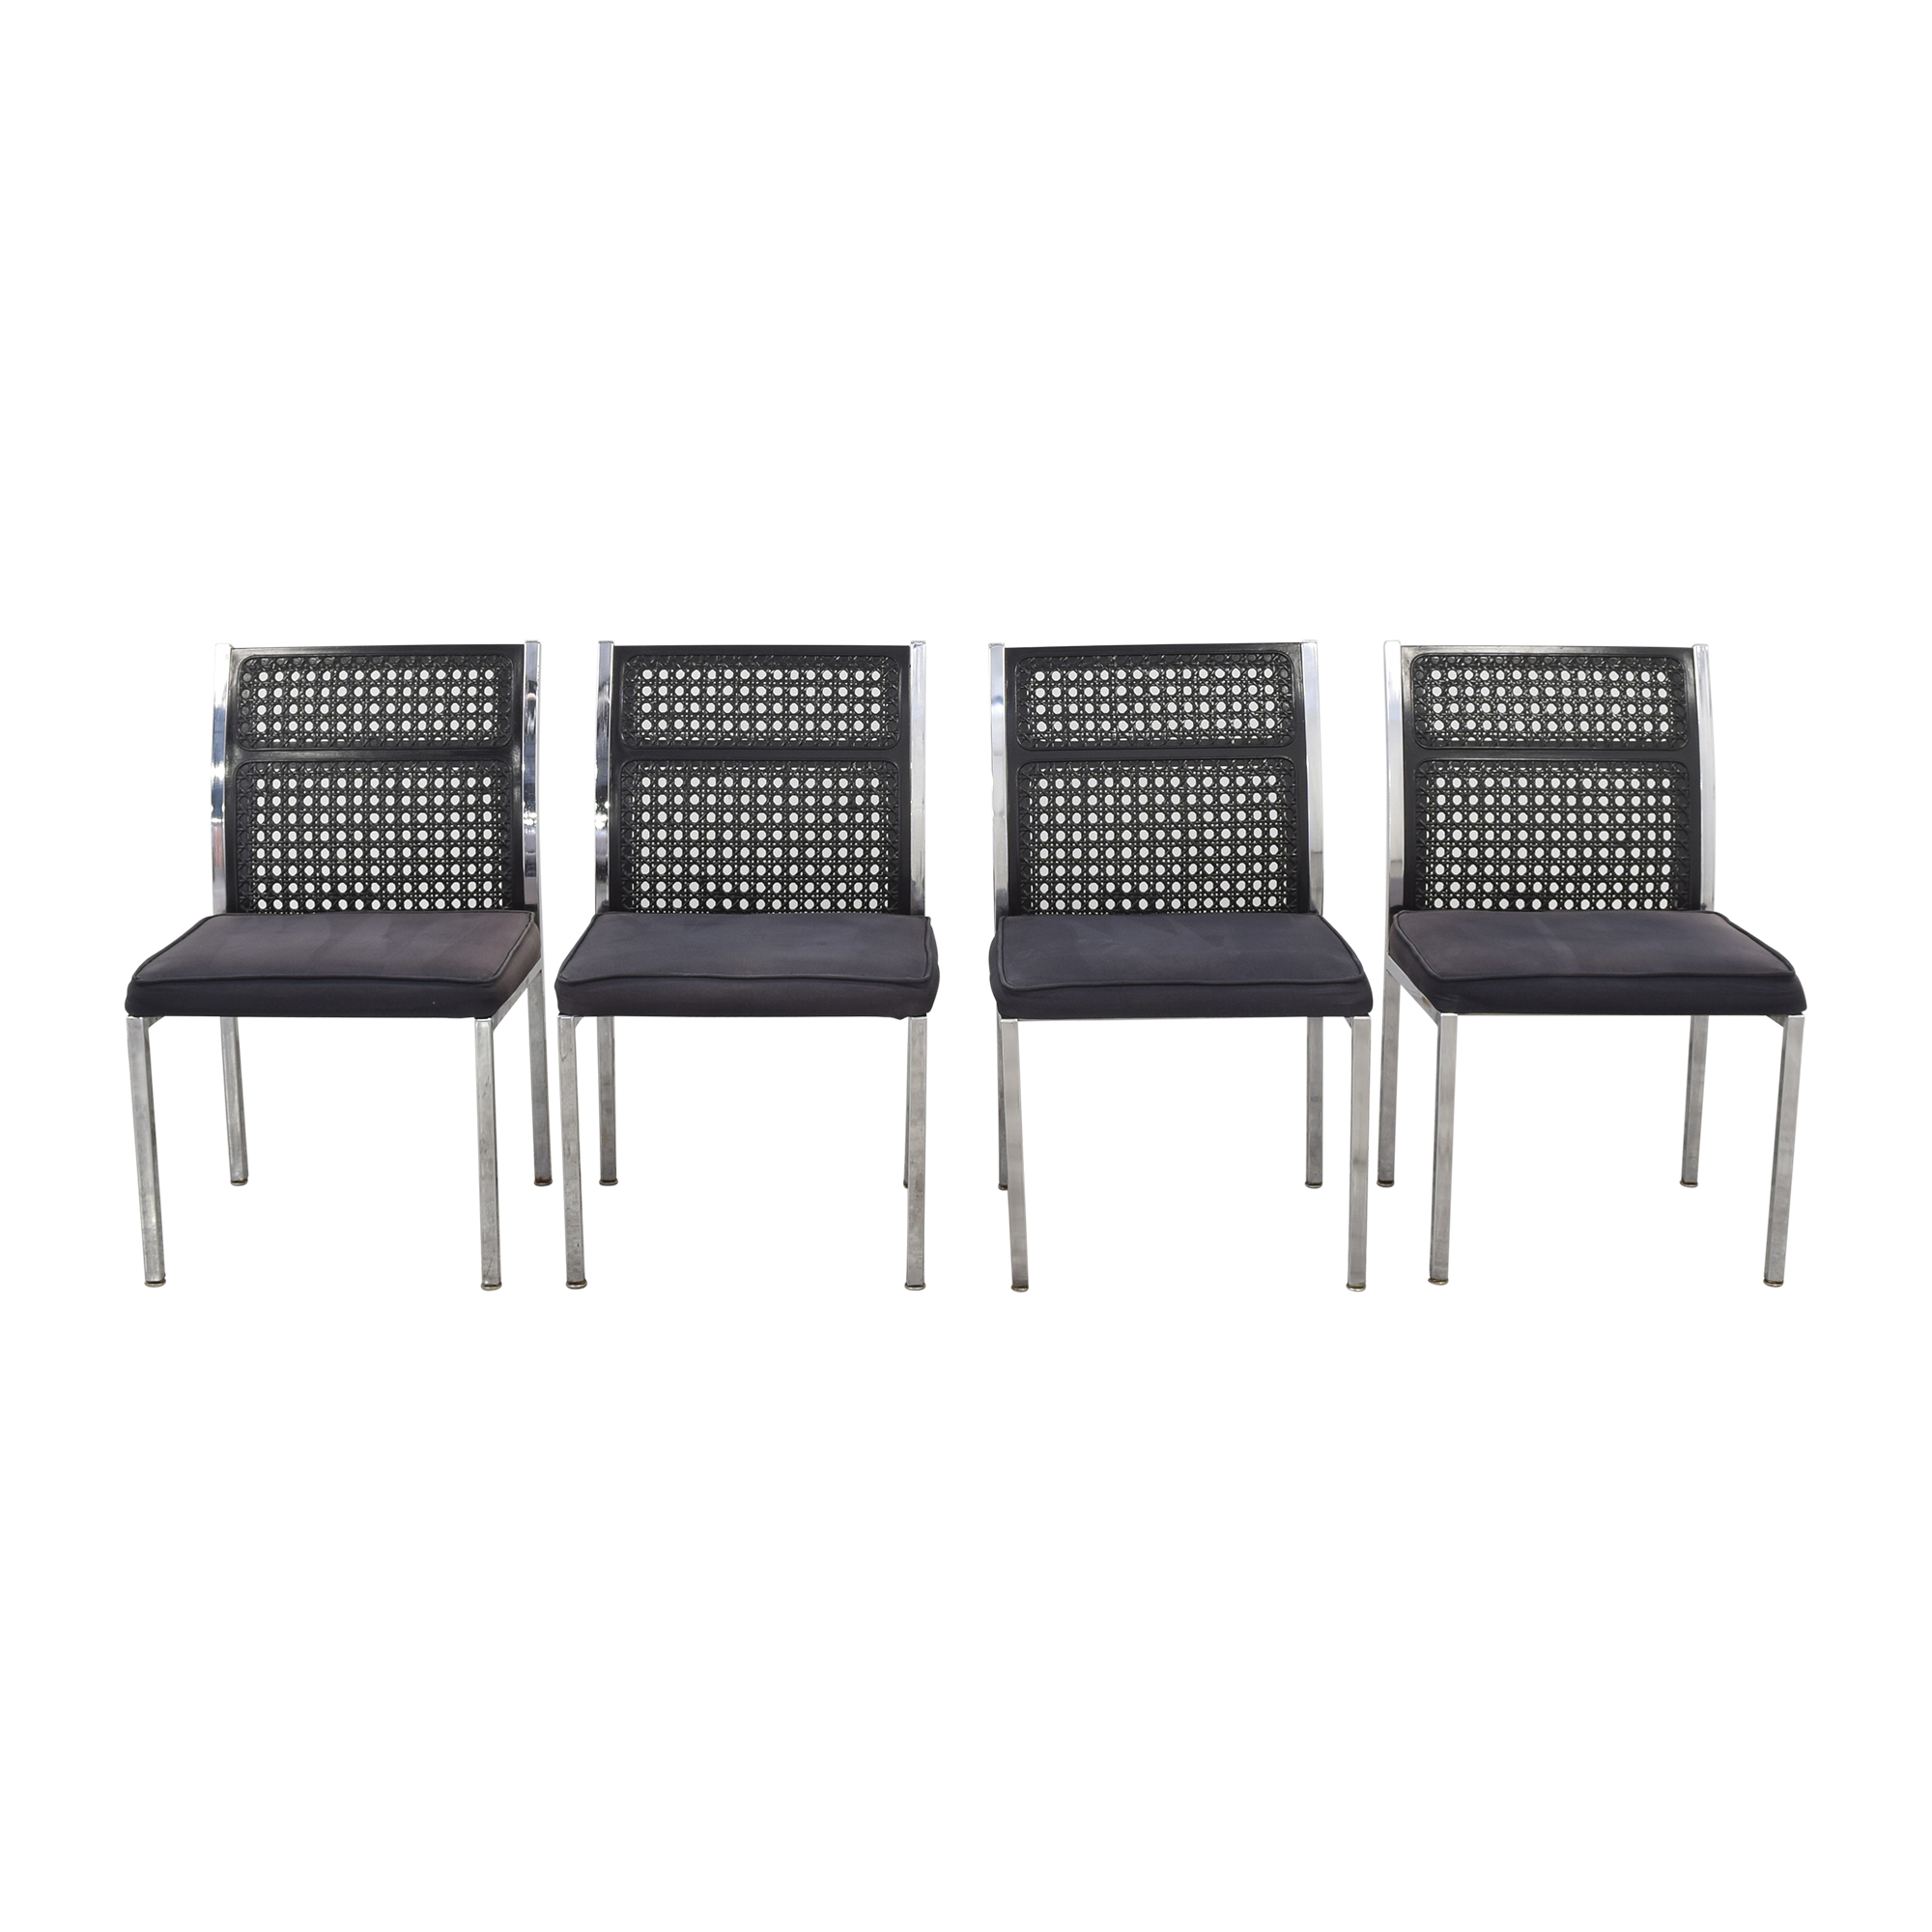 shop Howell by Interlake Howell by Interlake Dining Chairs online